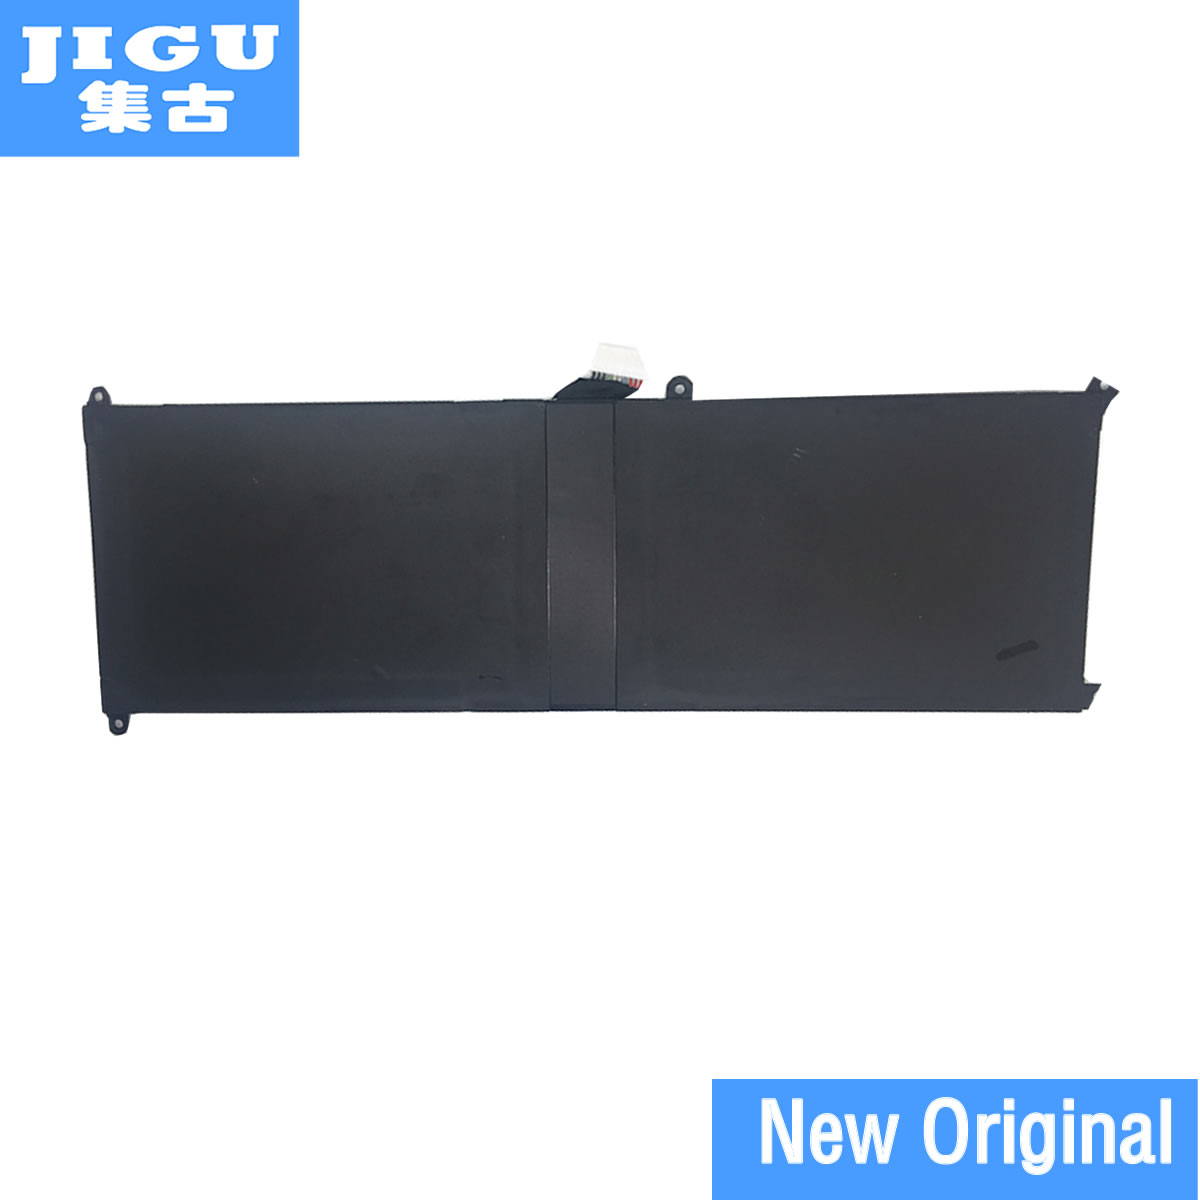 JIGU Original Laptop Battery 0V55D0 9TV5X 7VKV9 For DELL Latitude 12 7275 XPS 12 9250 7.6V 30WHJIGU Original Laptop Battery 0V55D0 9TV5X 7VKV9 For DELL Latitude 12 7275 XPS 12 9250 7.6V 30WH